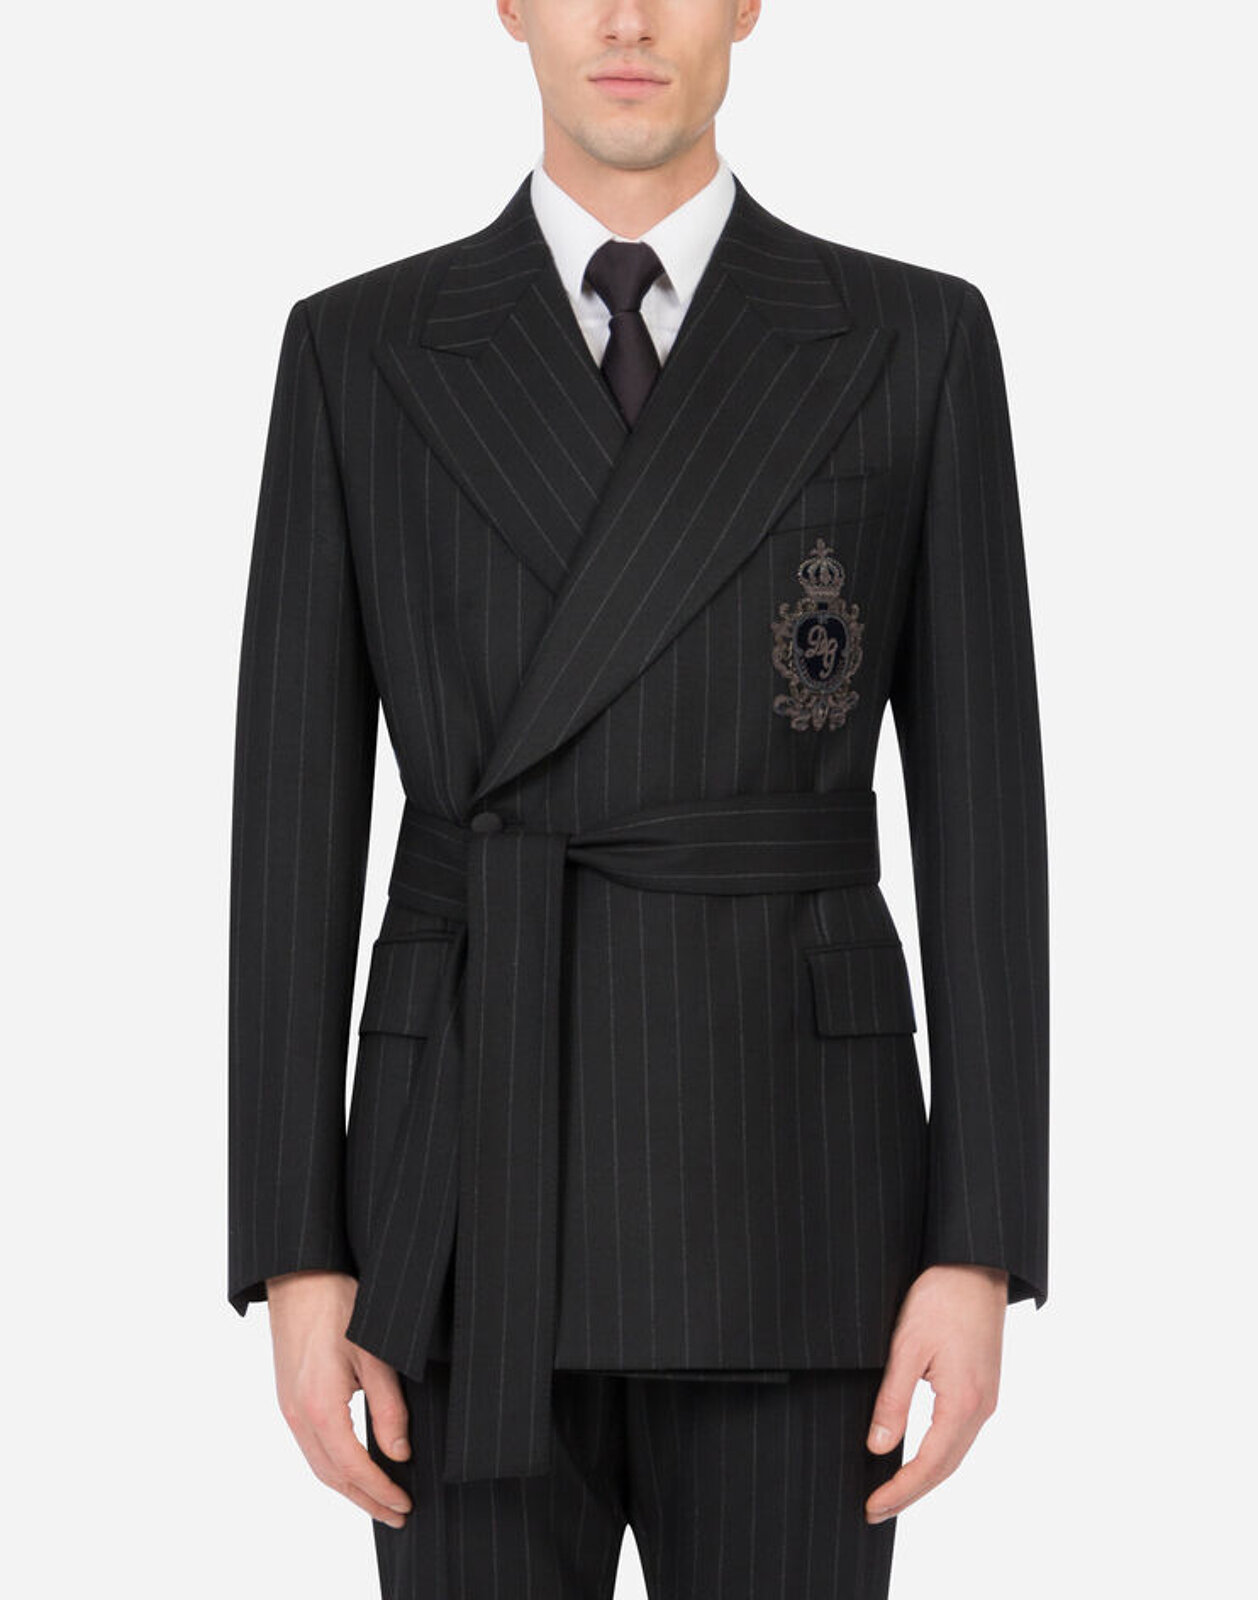 Pinstripe Wool Jacket With Belt And Patch - Dolce & Gabbana